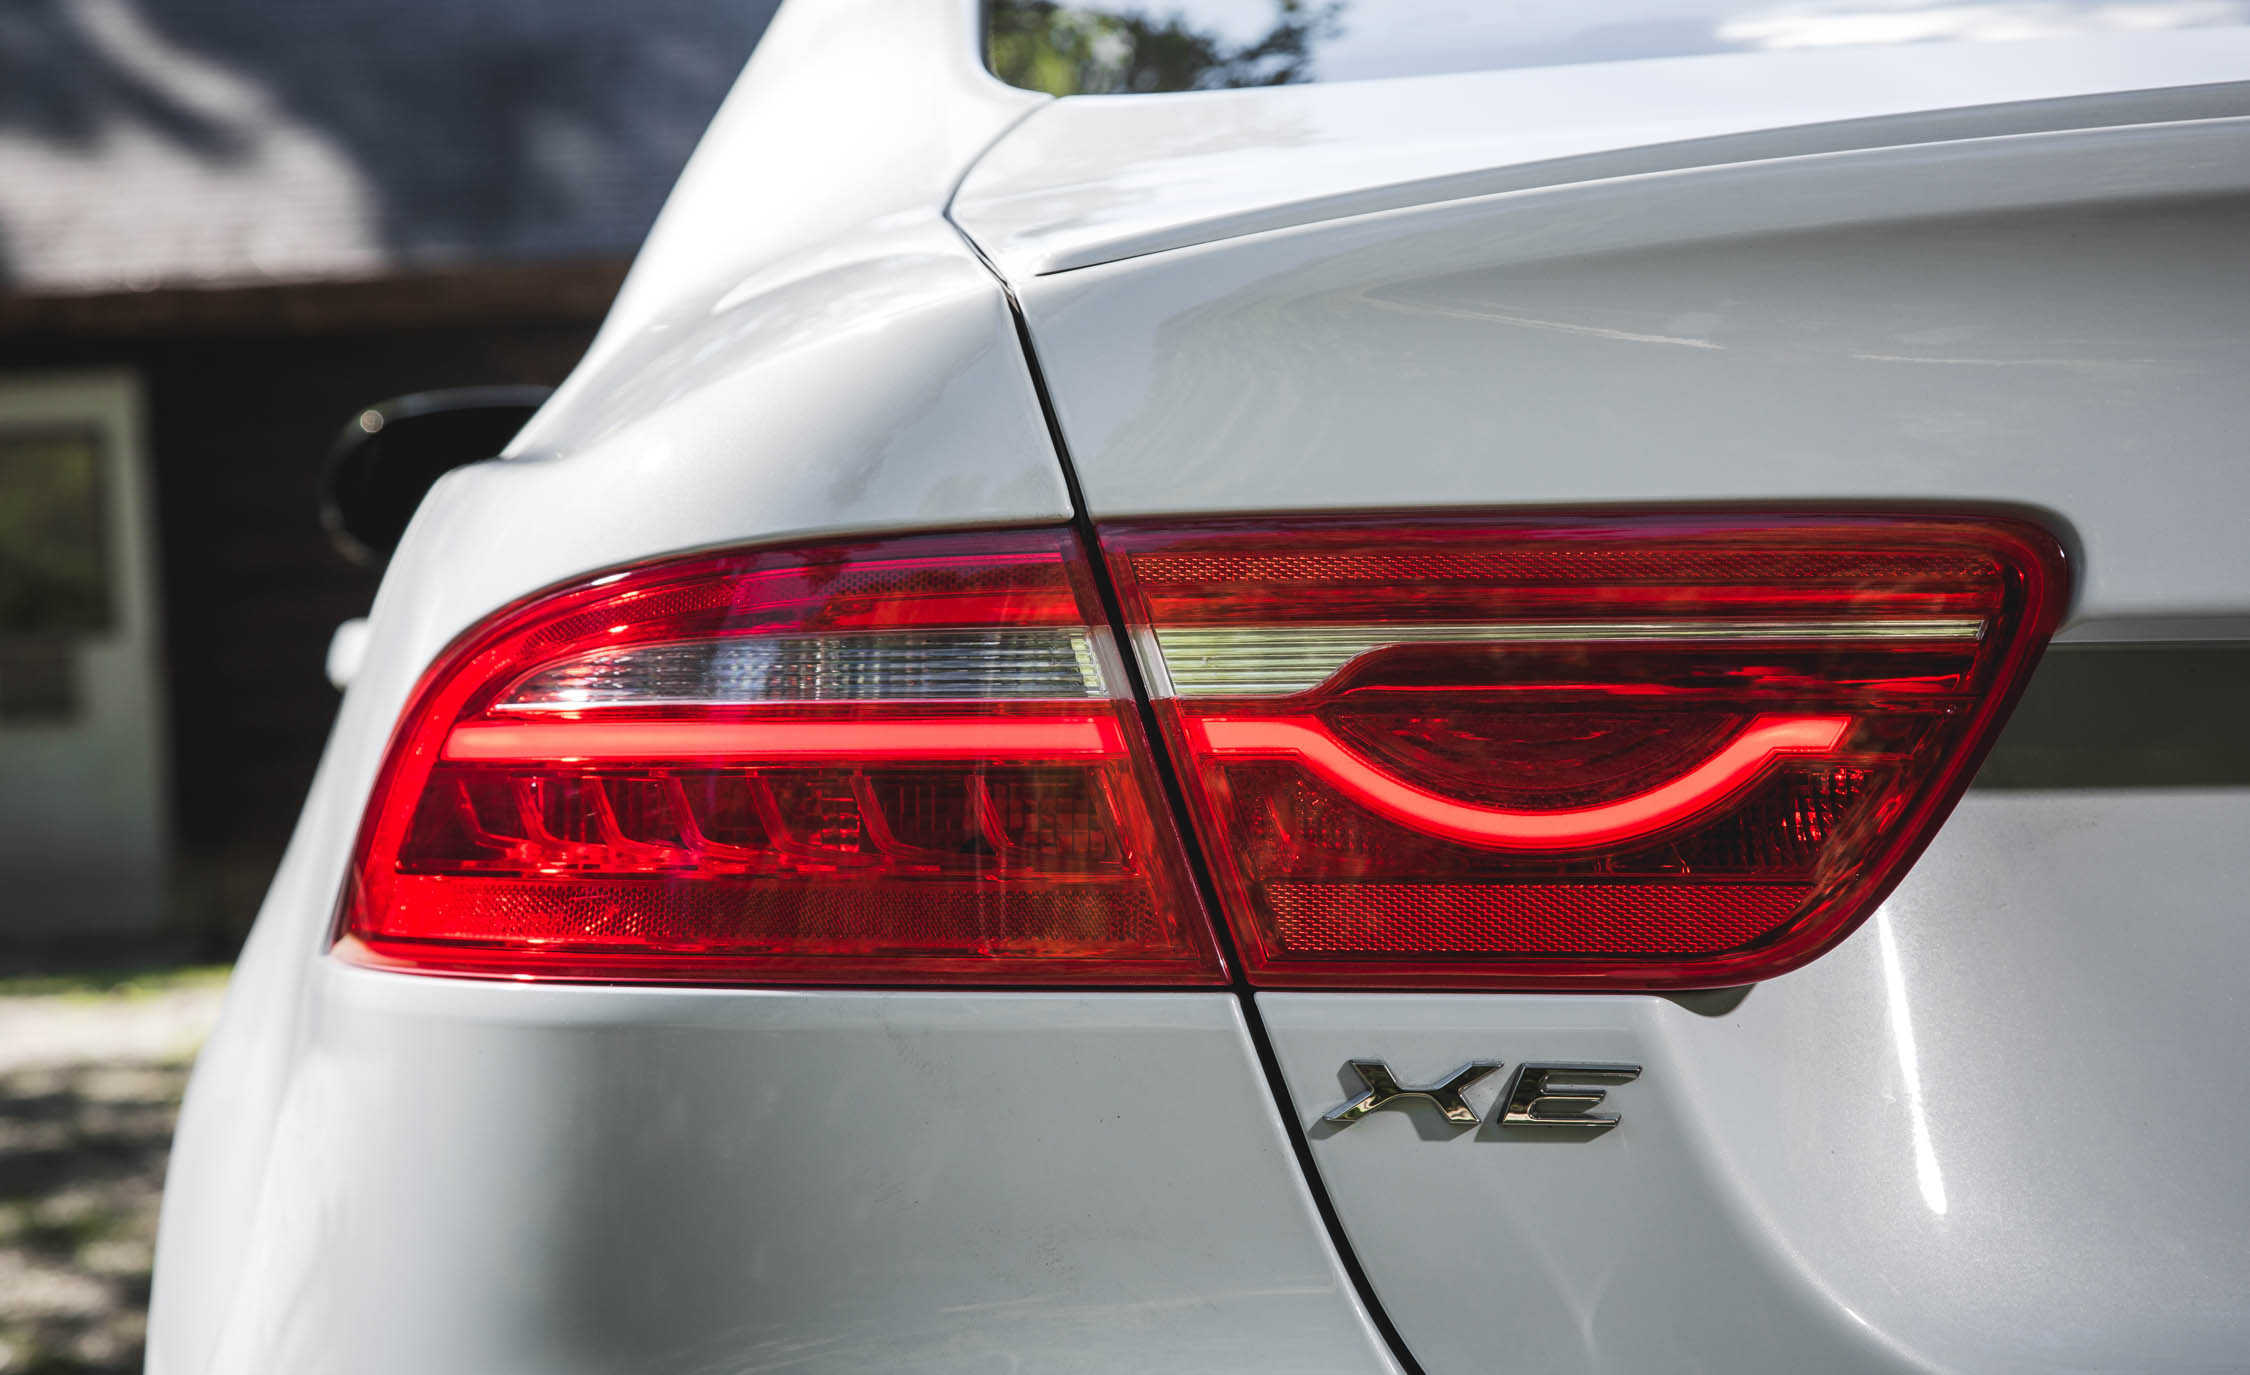 2017 Jaguar Xe White Exterior View Taillight Left Side (View 2 of 32)